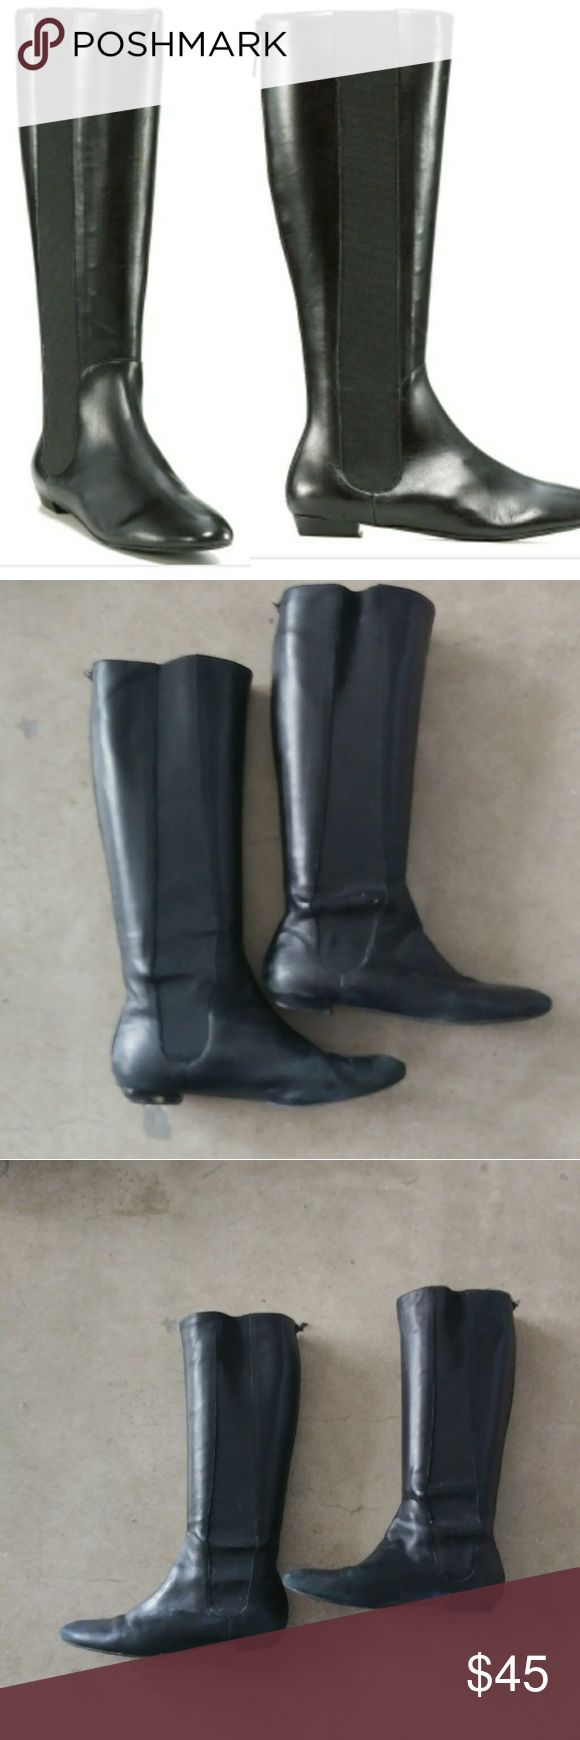 Delman Paris Flat Knee Boots 9.5 Used condition see pics. Heels are worn and could use cobbler. Leather in good condition. See pics, one scratch. A but dusty but no salt damage. Side elastic panels and back zip. Delman Shoes Combat & Moto Boots